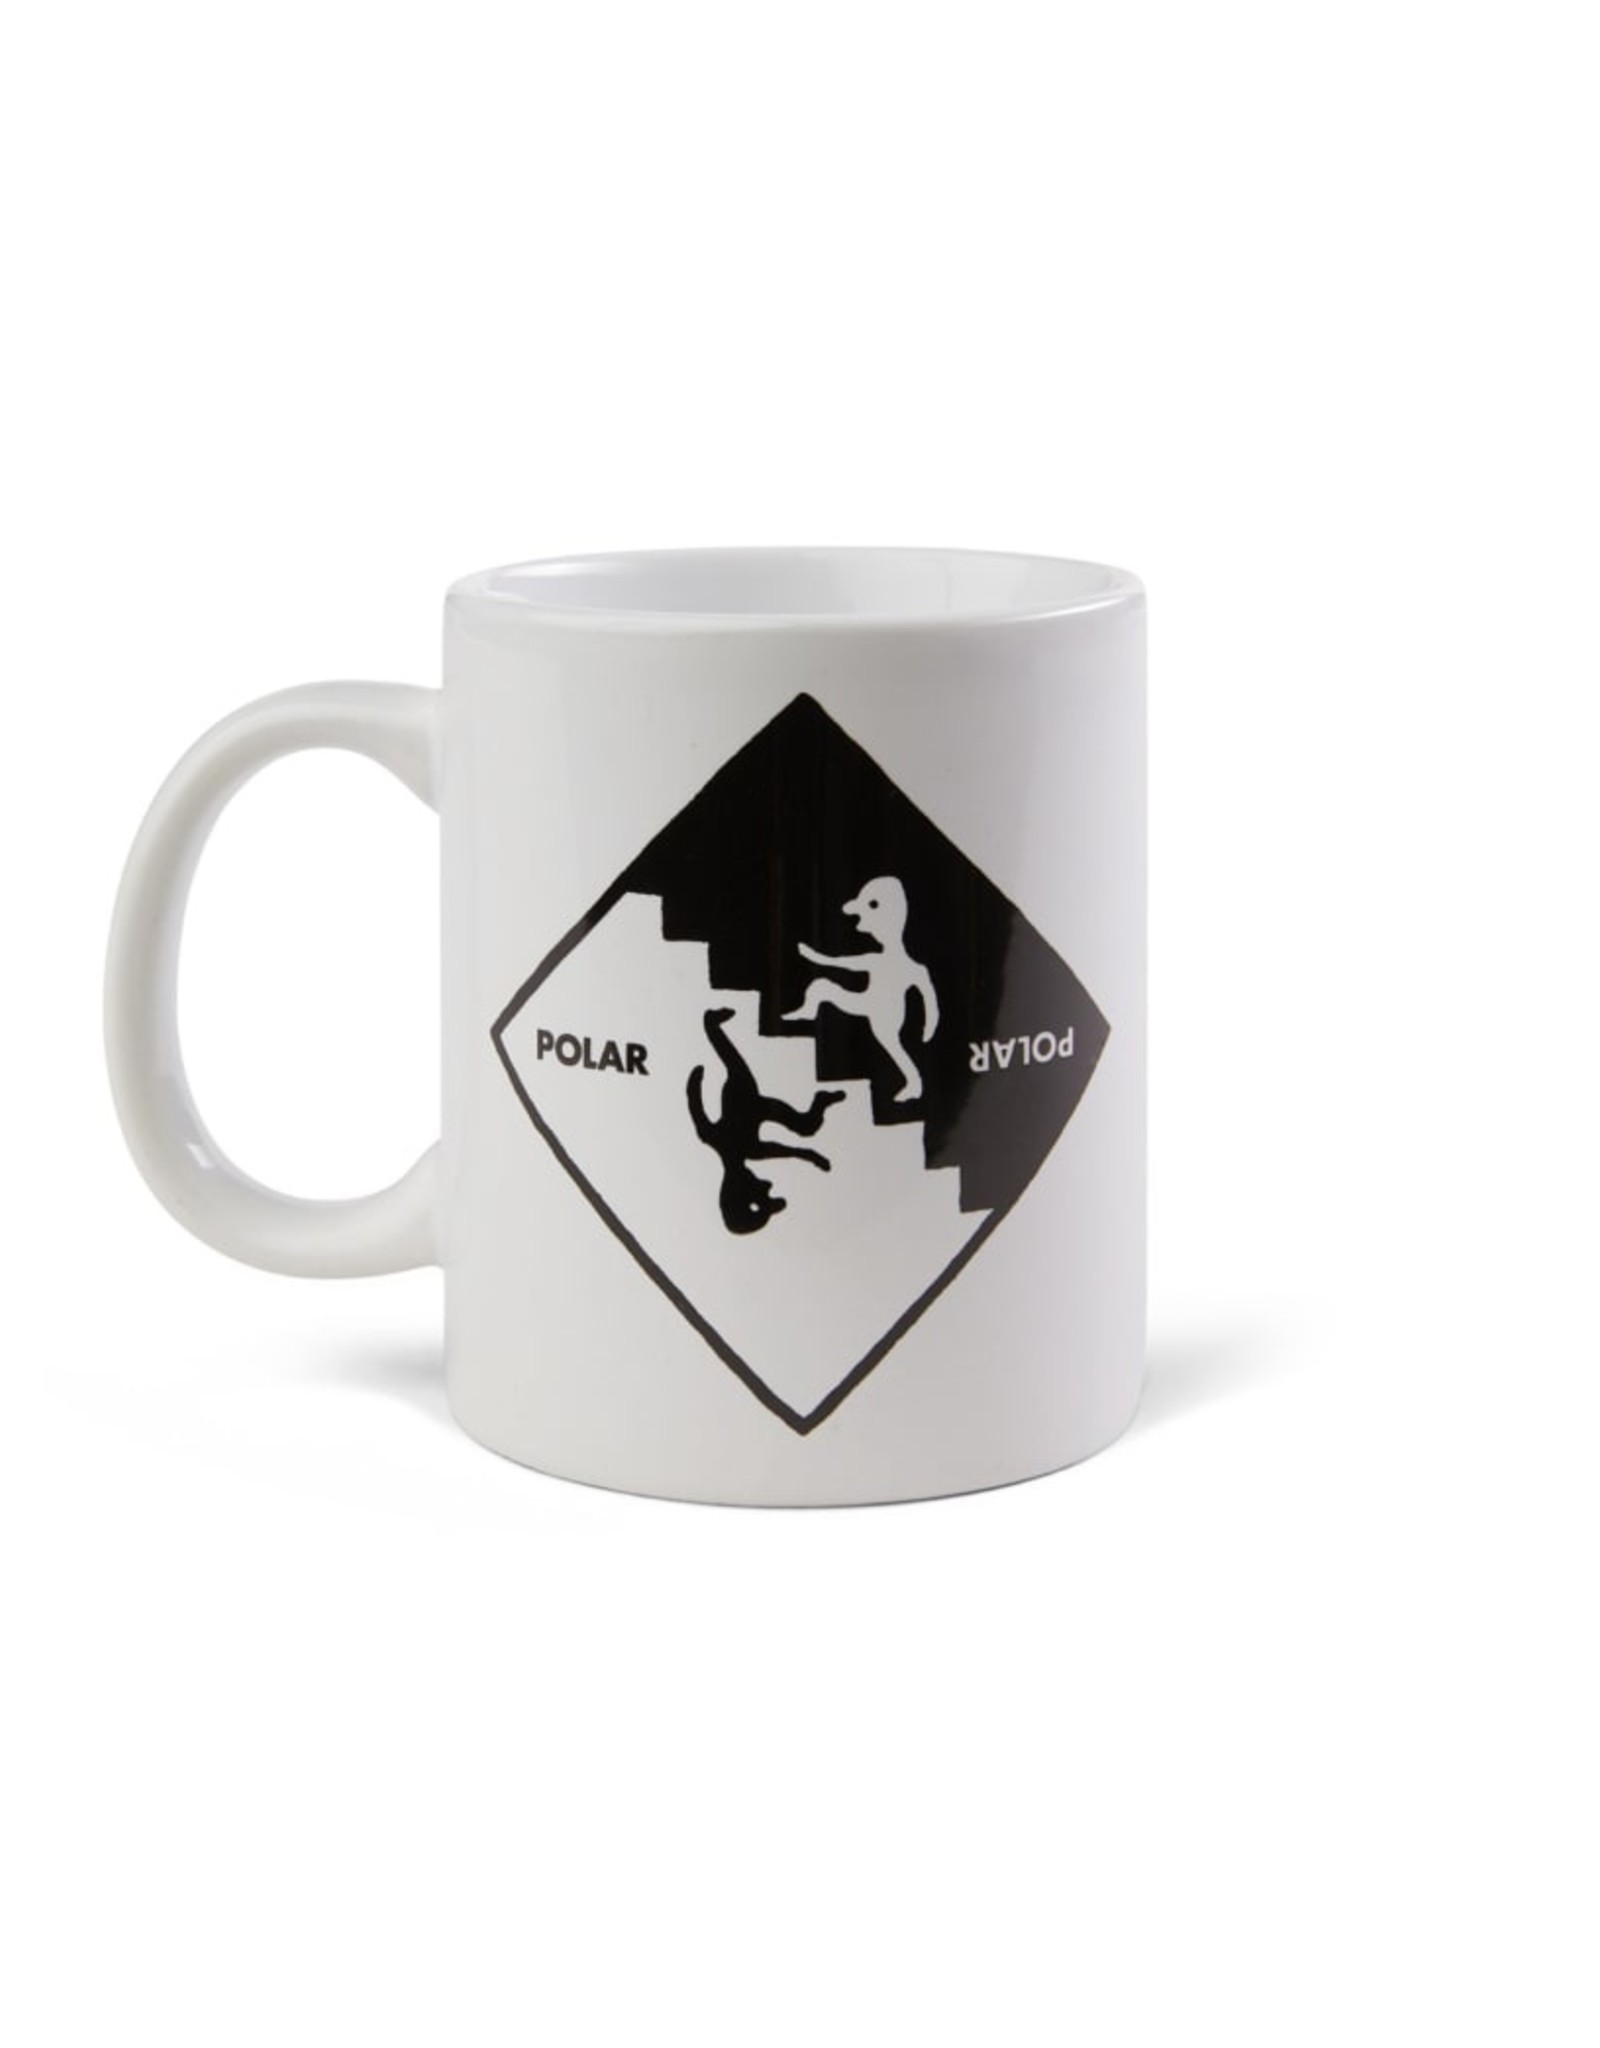 POLAR STAIRCASE COFFEE MUG